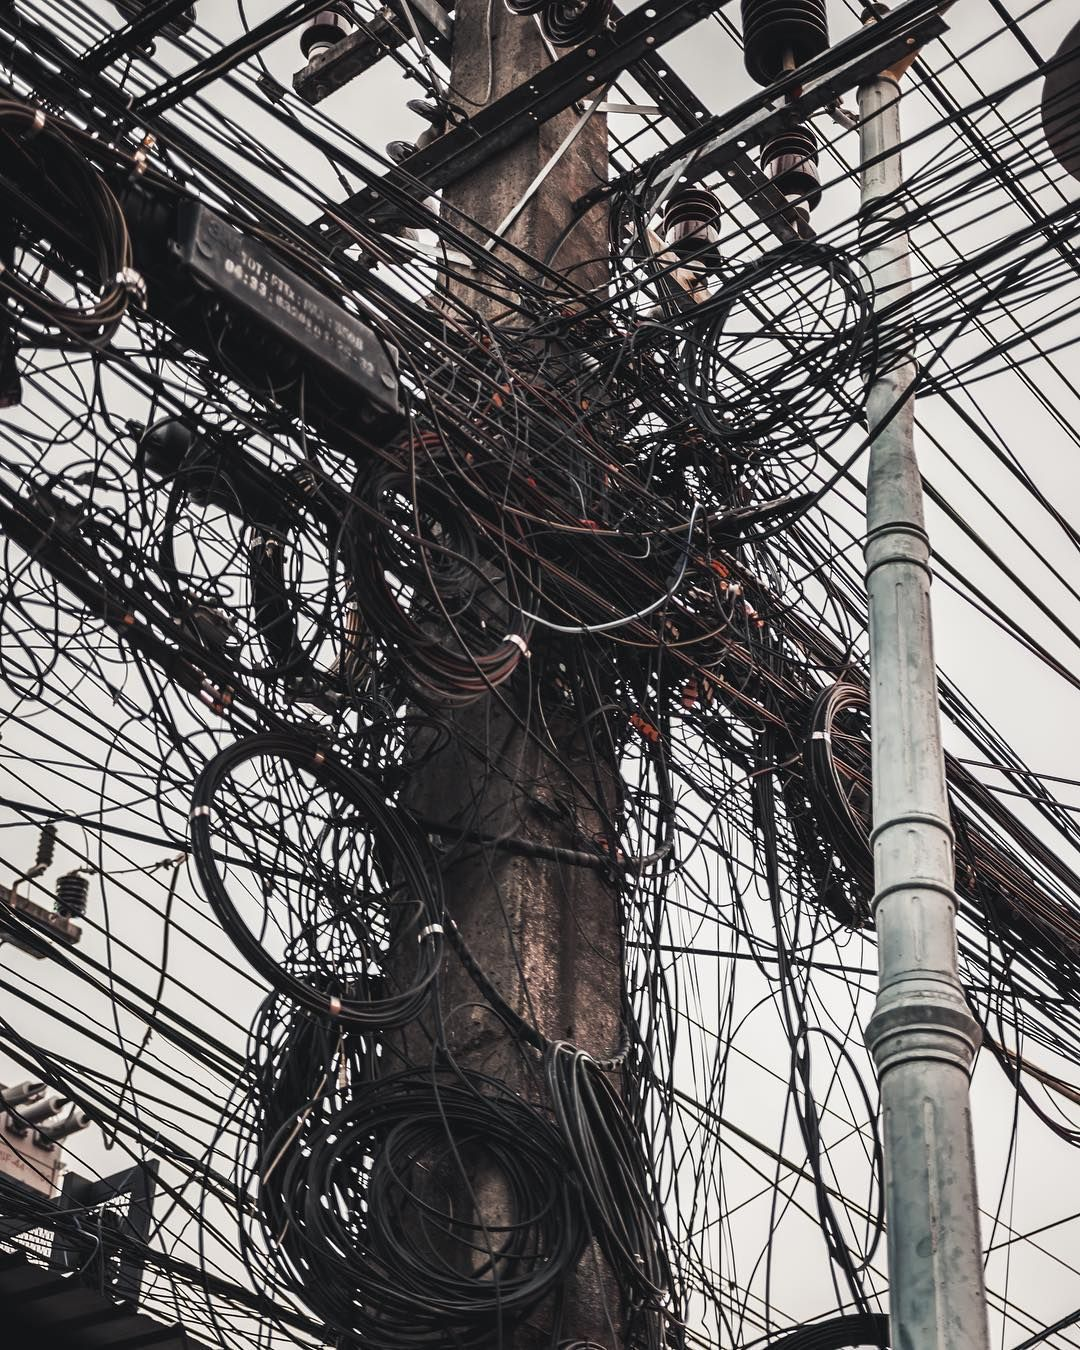 small resolution of electrical spaghetti messy electrical wiring at phuket patongbeach banglaroad electrical spaghetti thailandvisit travelawesome goexplore